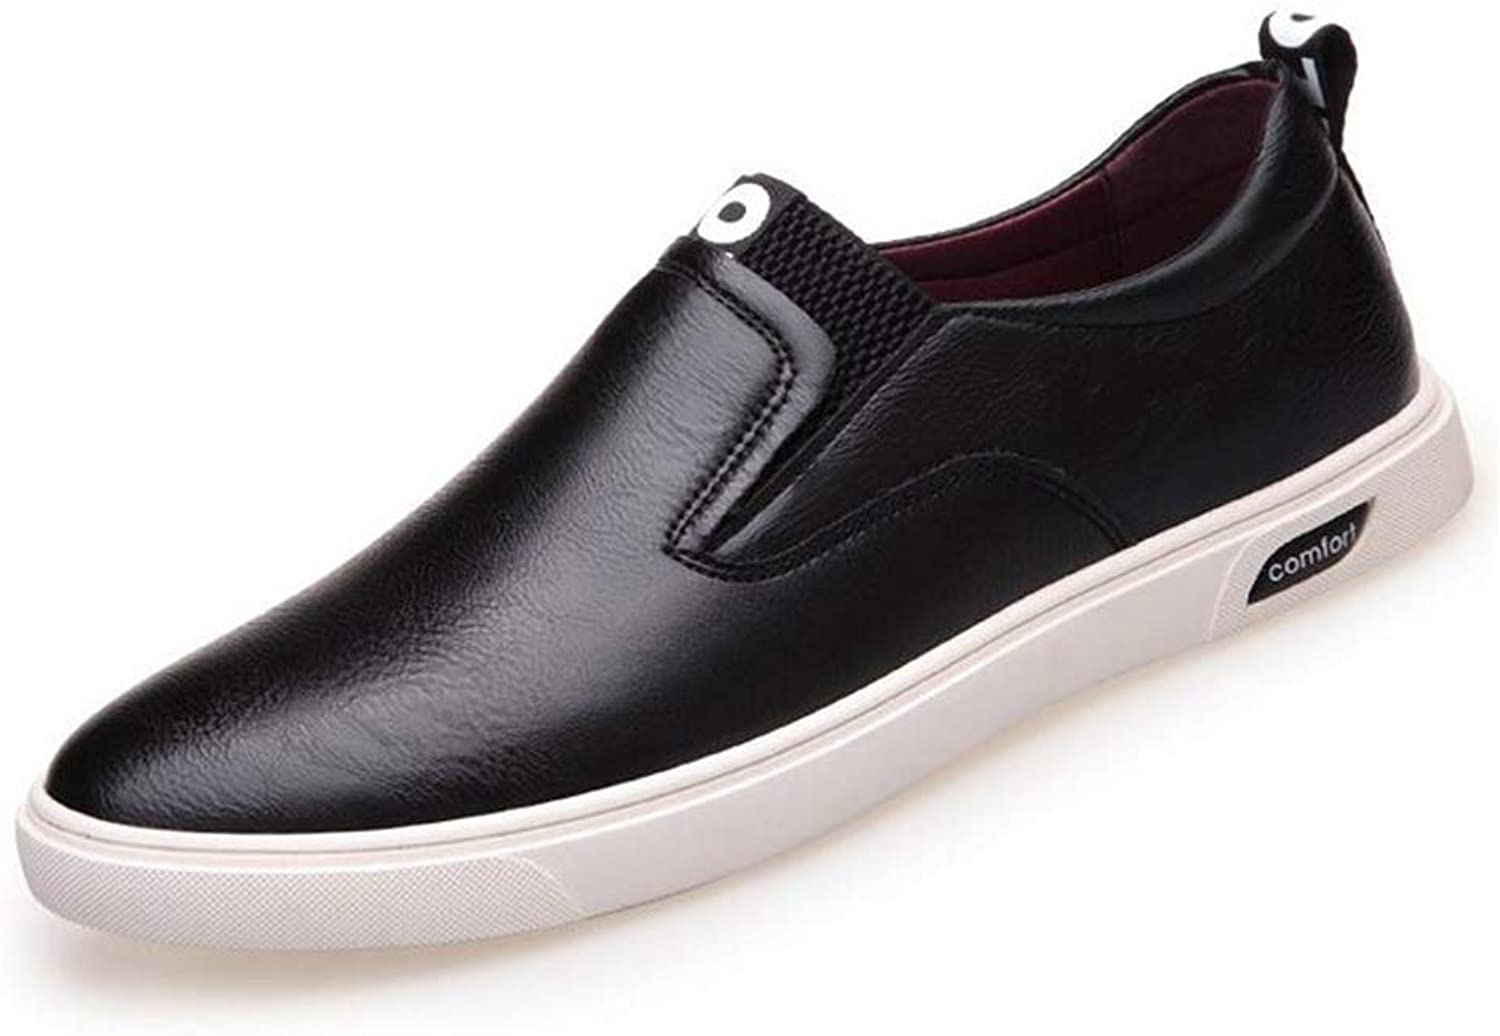 Y-H Men's Casual shoes, Spring Fall Loafers & Slip-Ons Lazy shoes, Formal Business shoes, Flat Slip-Ons Driving shoes,Black,43